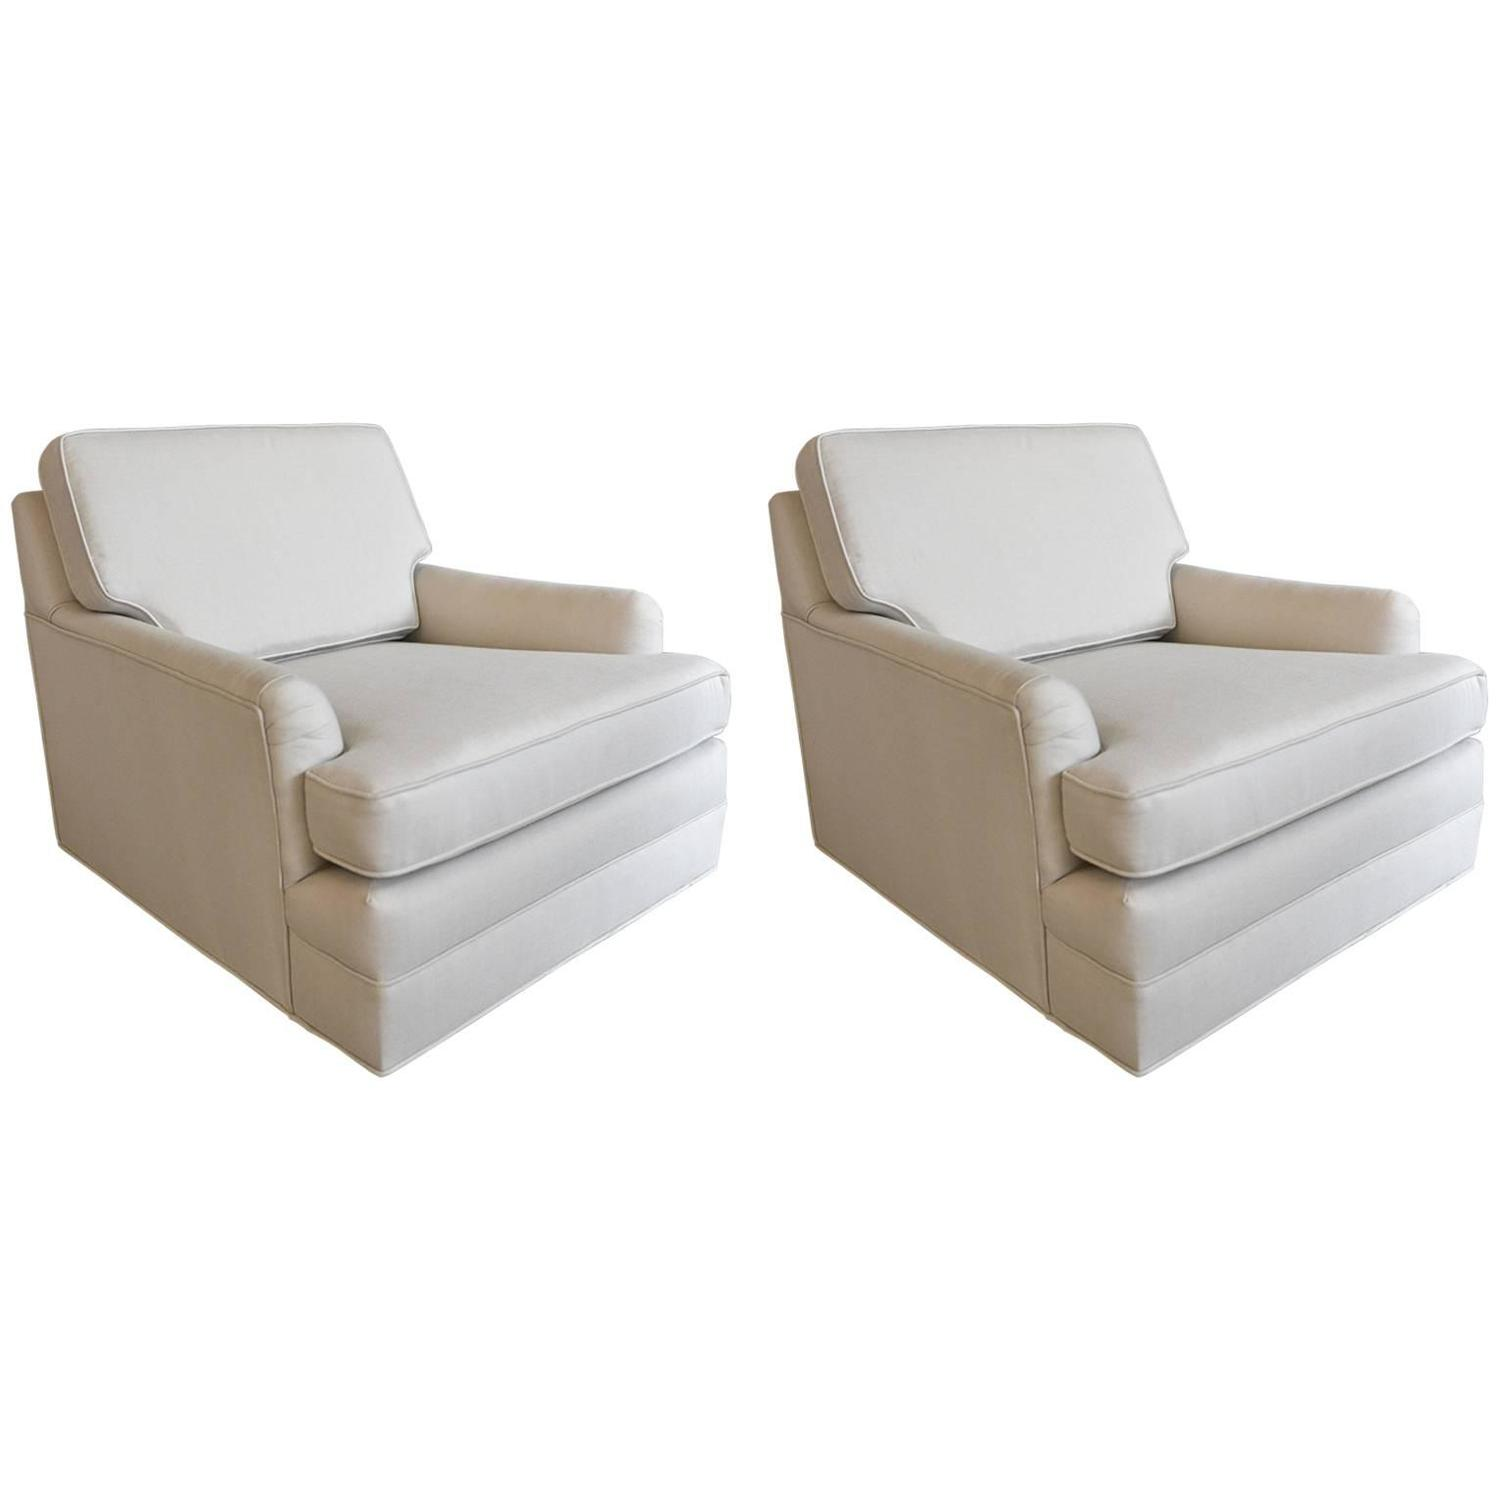 Pair of Harvey Probber Floating Lounge Chairs For Sale at 1stdibs